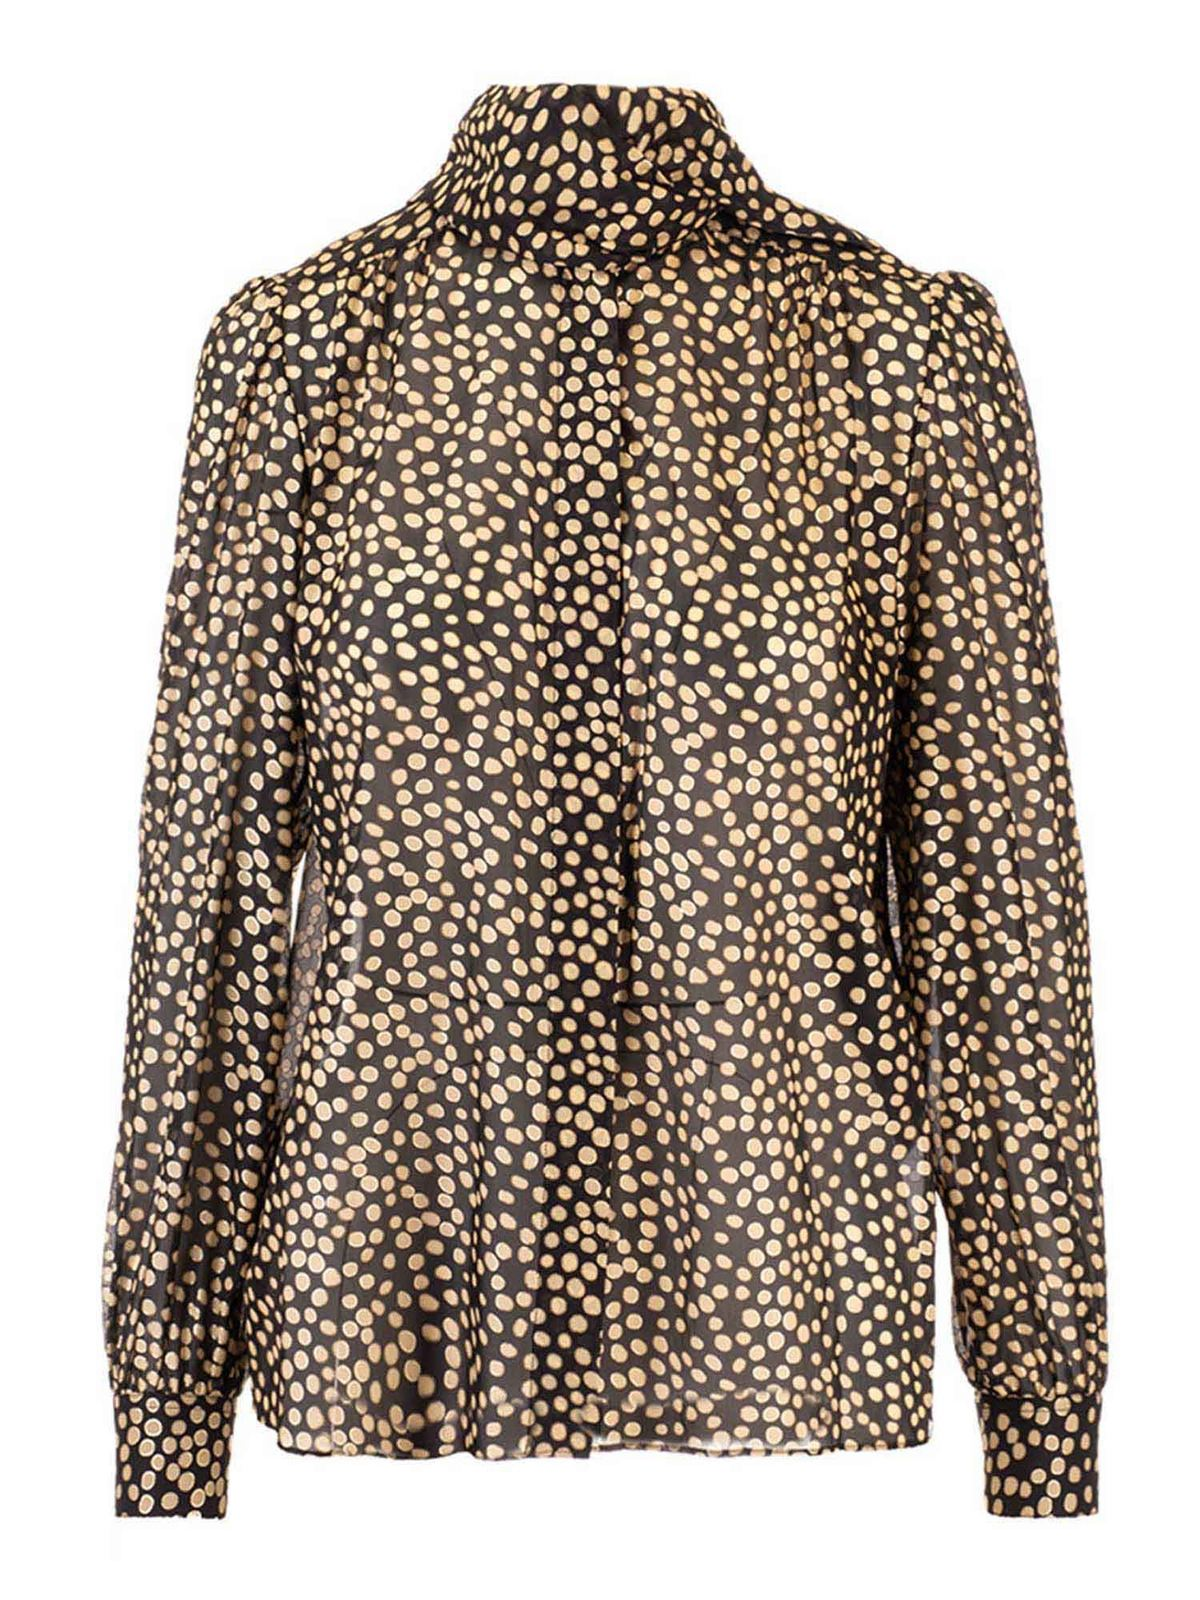 SAINT LAURENT LAVALLIERE BLOUSE IN GOLD AND BLACK